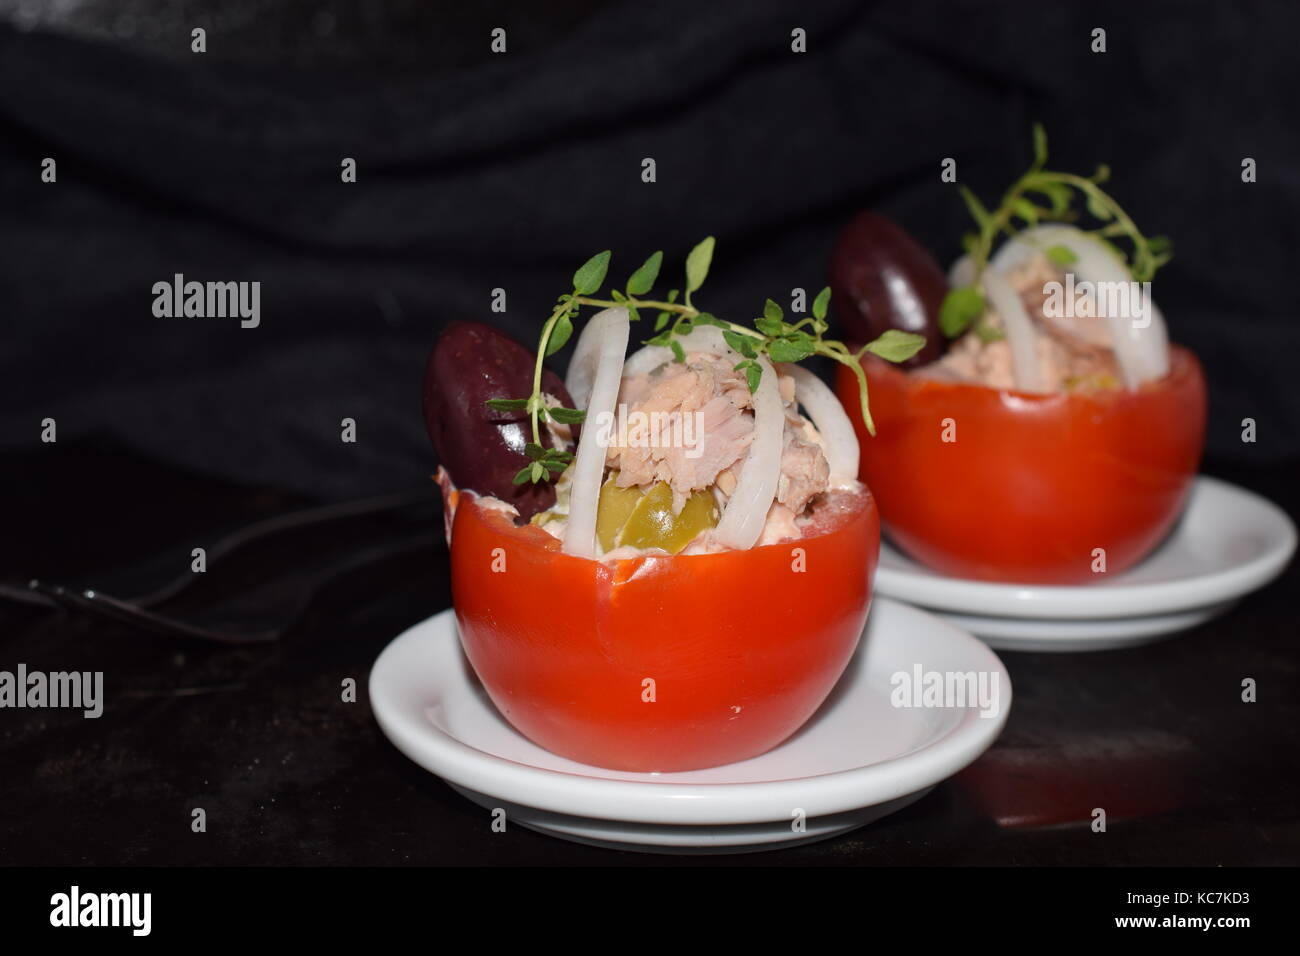 Tomato stuffed with tuna olives and onions. Healthy eating concept. Selective focus - Stock Image